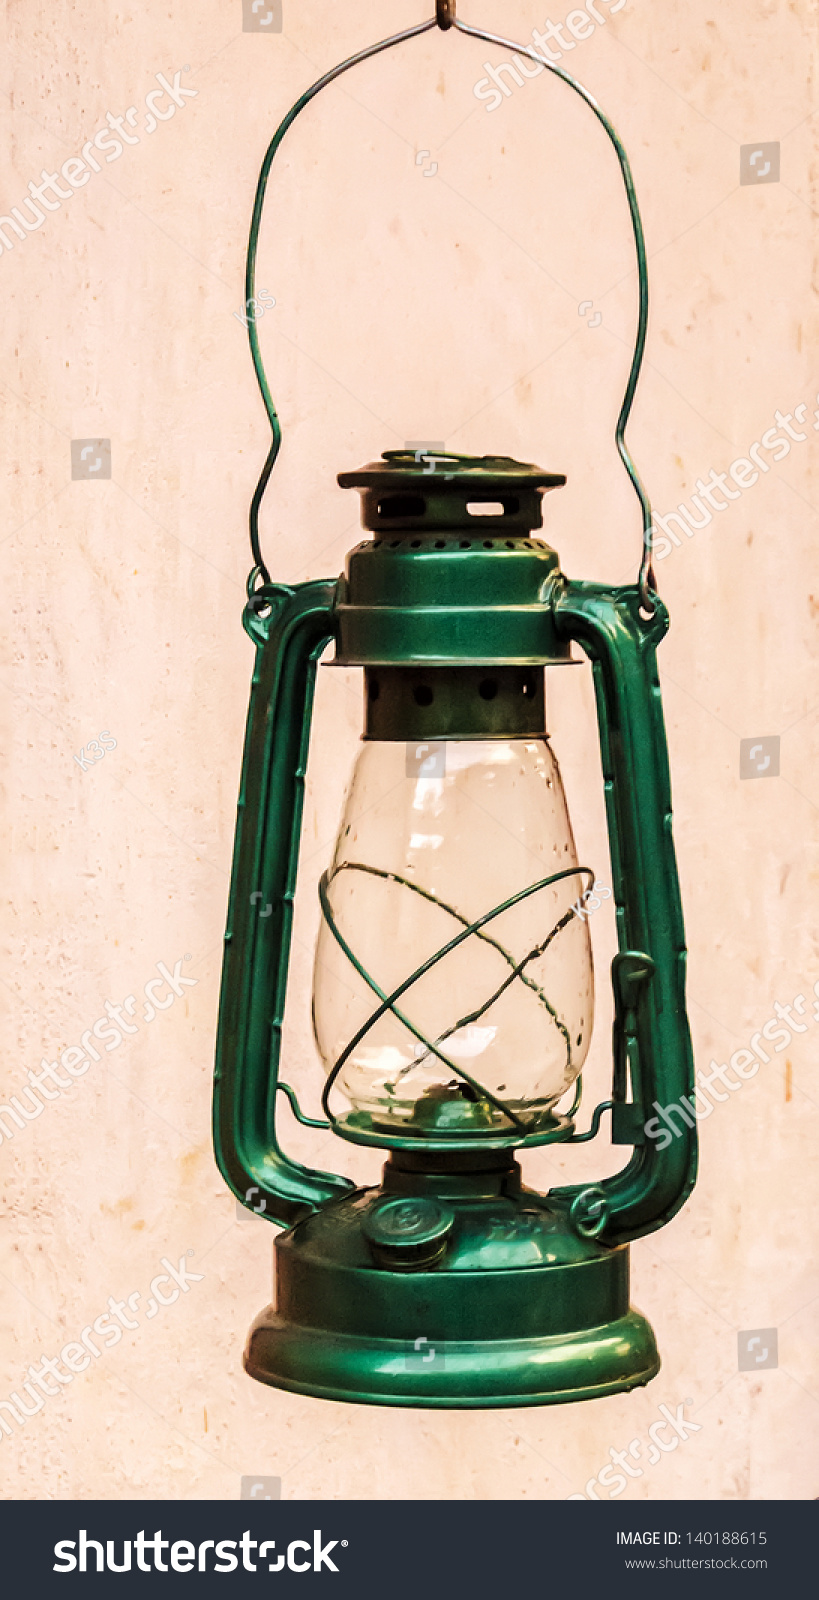 A Green Lantern In An Indian Village. This Is The Only Light Source In Many